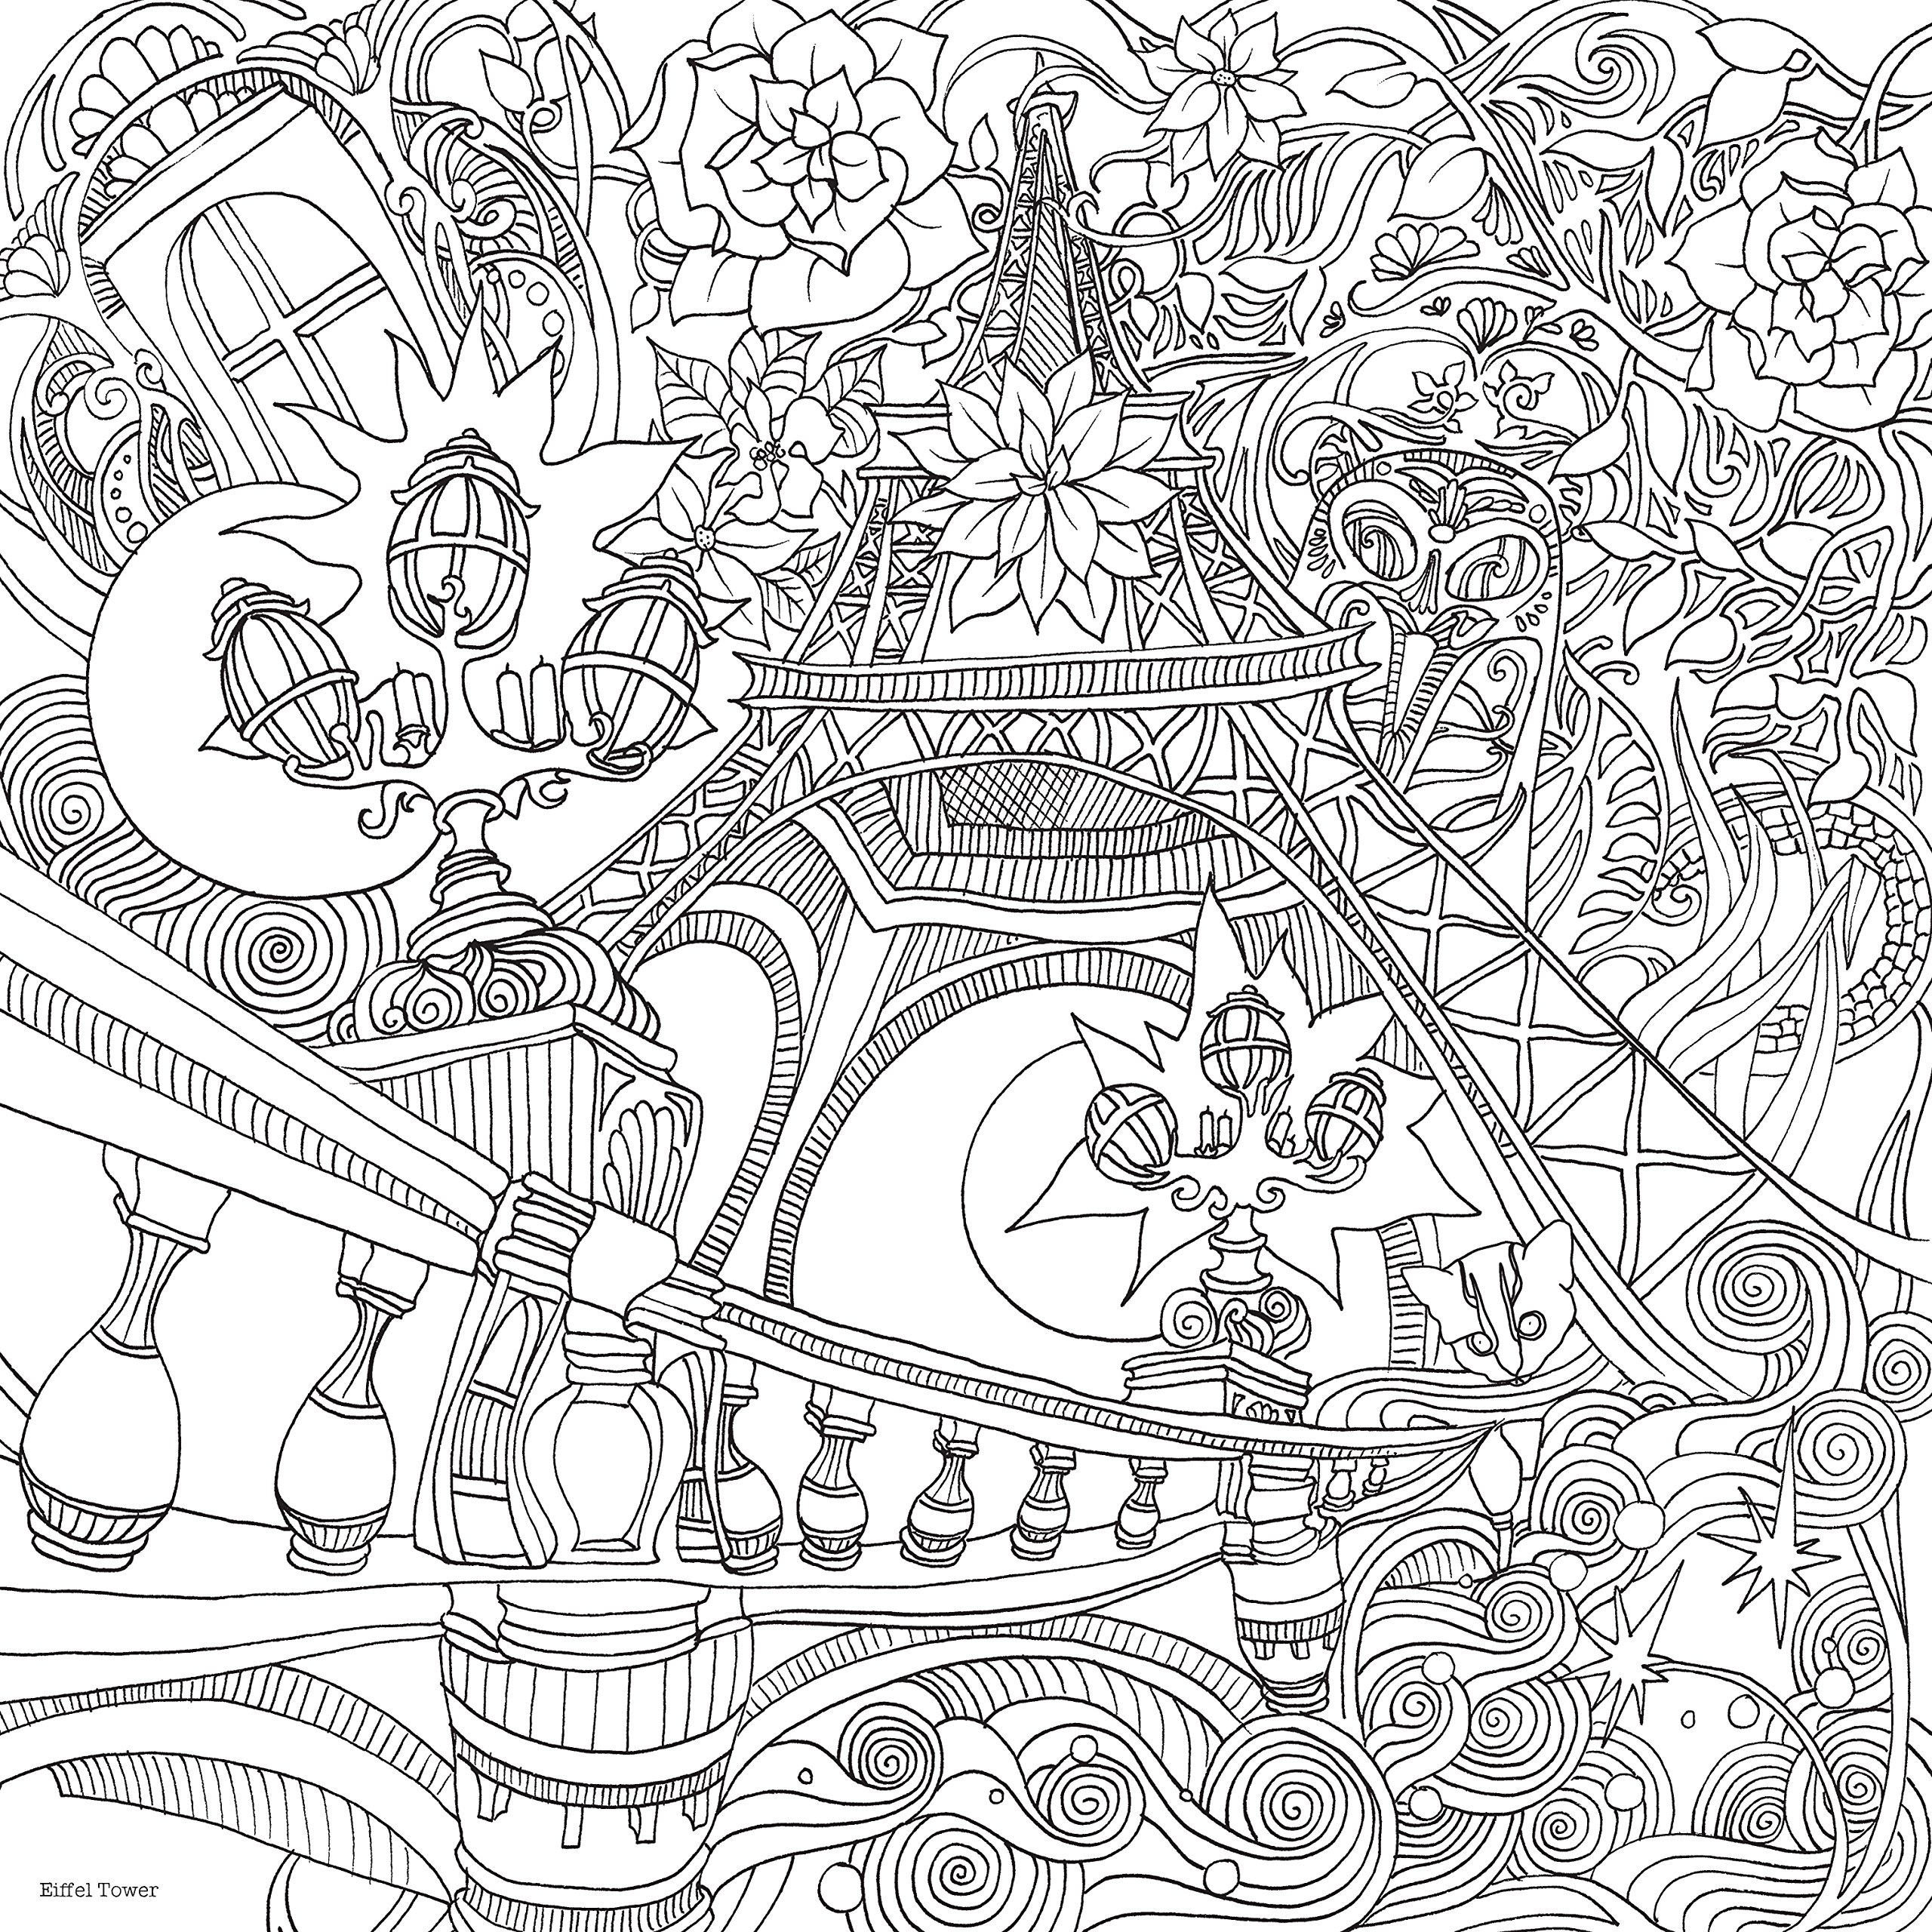 City coloring #2, Download drawings